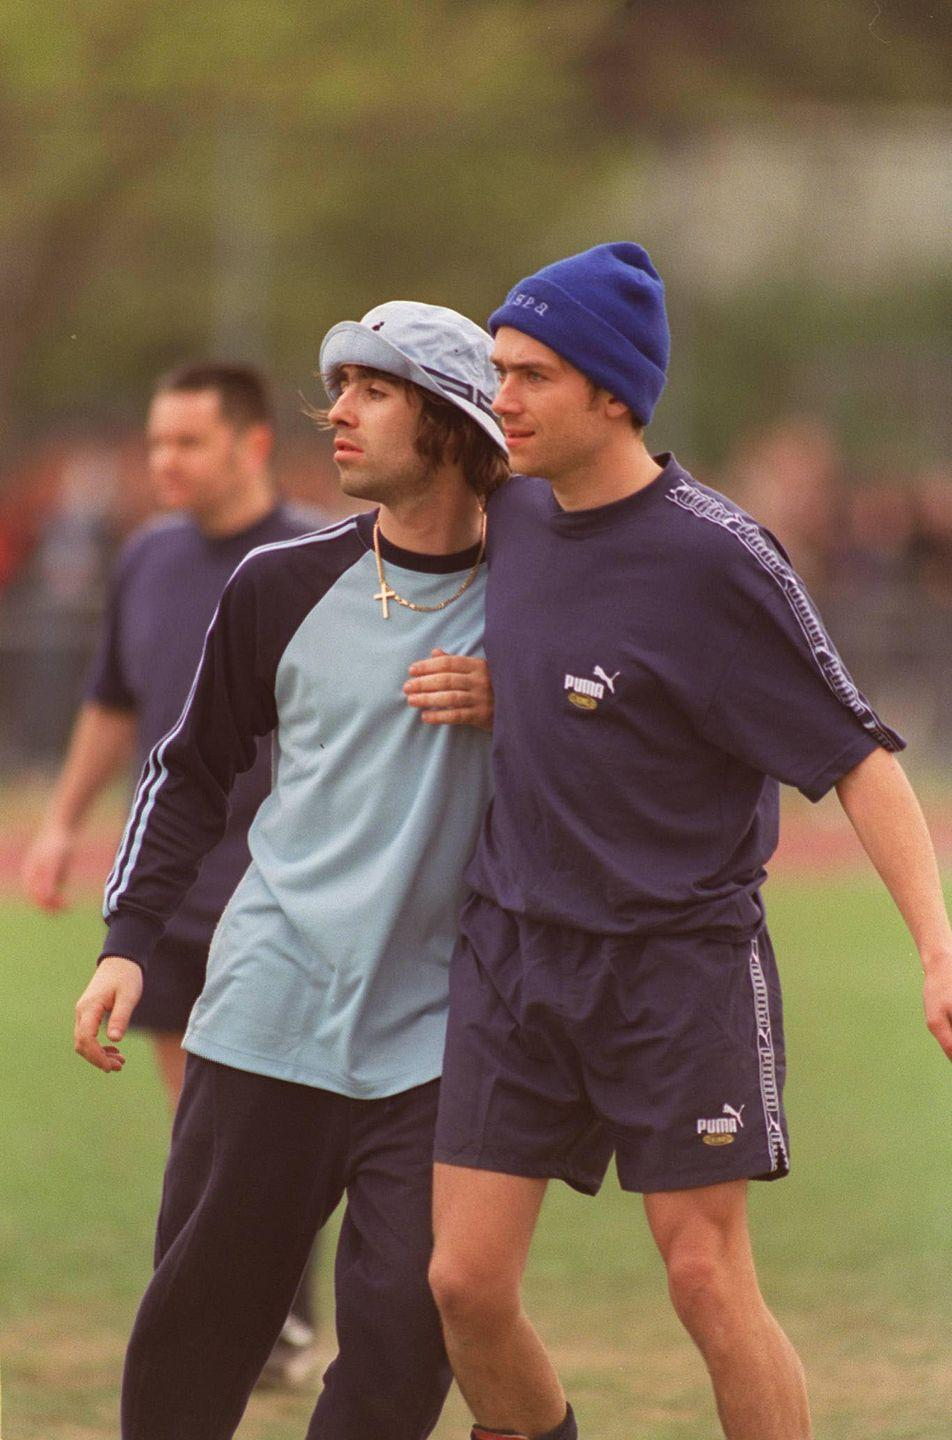 <p>Liam Gallagher of Oasis and Damon Albarn, lead singer of Blur, play in a charity soccer tournament in 1996,</p>